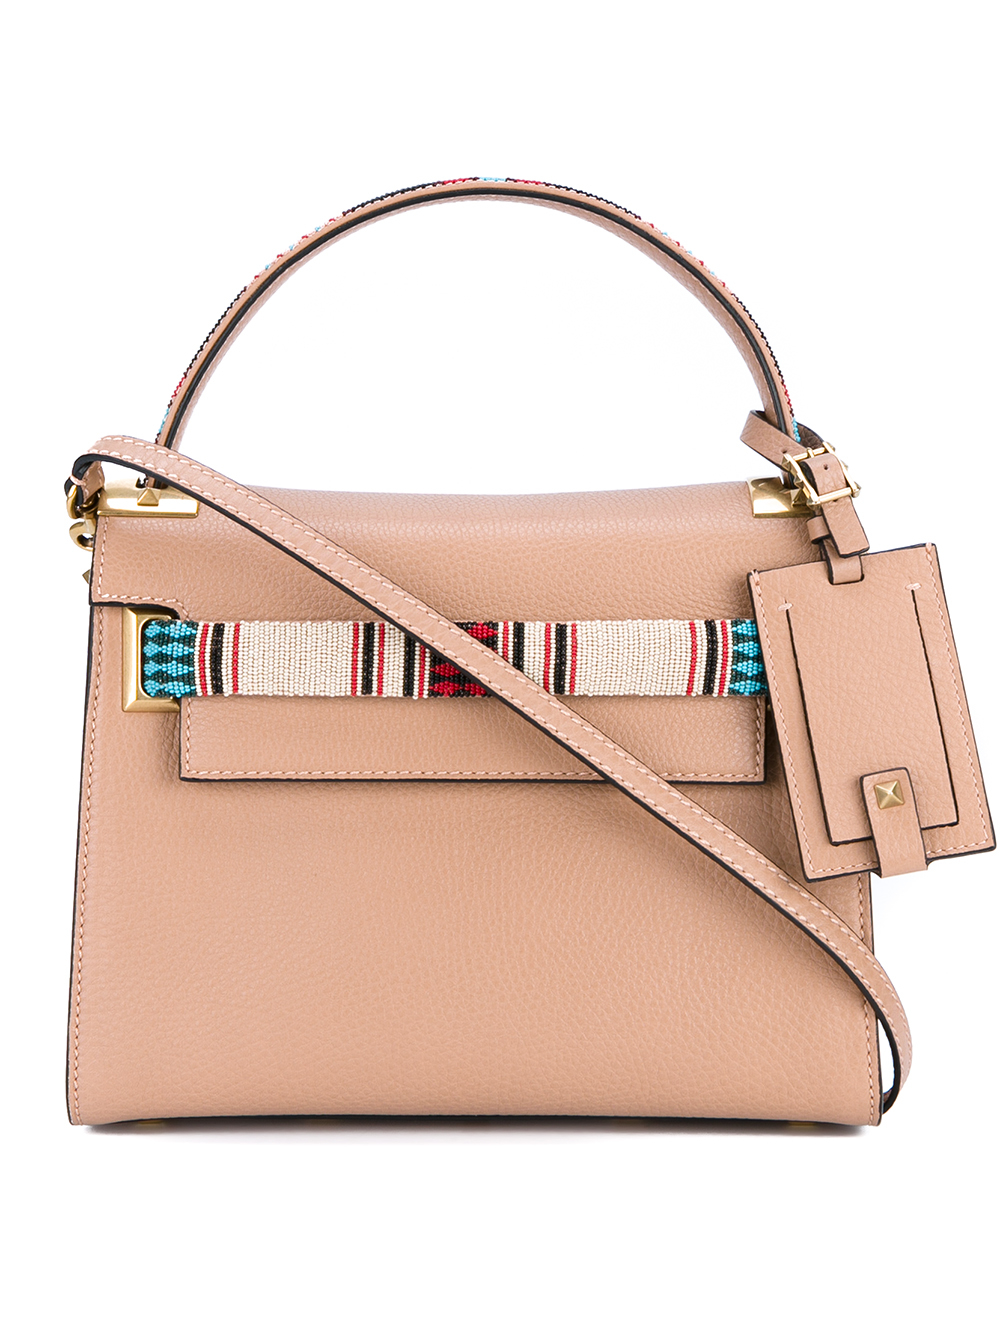 434505d4675c0 Valentino My Rockstud Small Beaded Leather Tote in Pink - Lyst